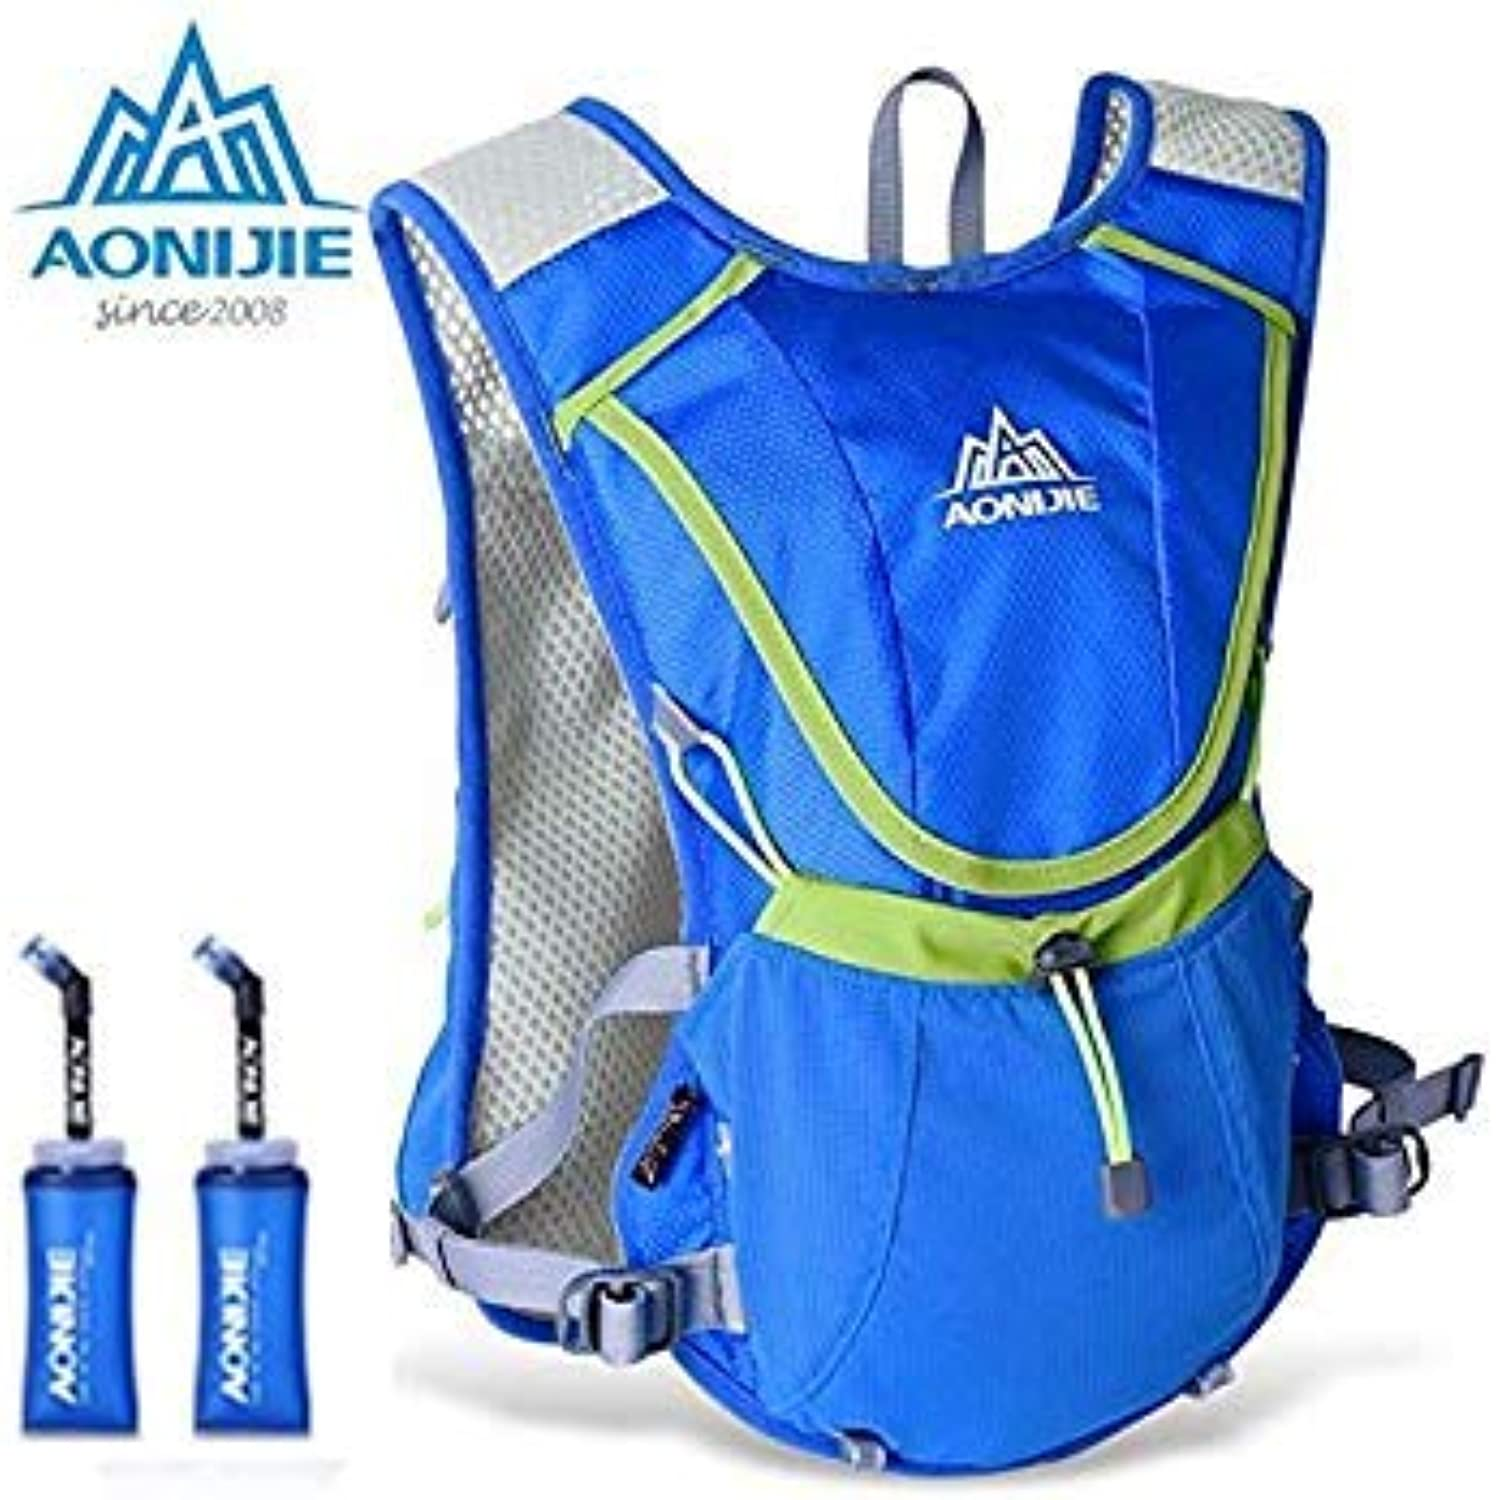 Olny Bag Black   AONIJIE Lightweight Running Backpack Outdoor Sports Marathon Cycling Hiking Bag with Optional 1.5L Hydration Water Bag